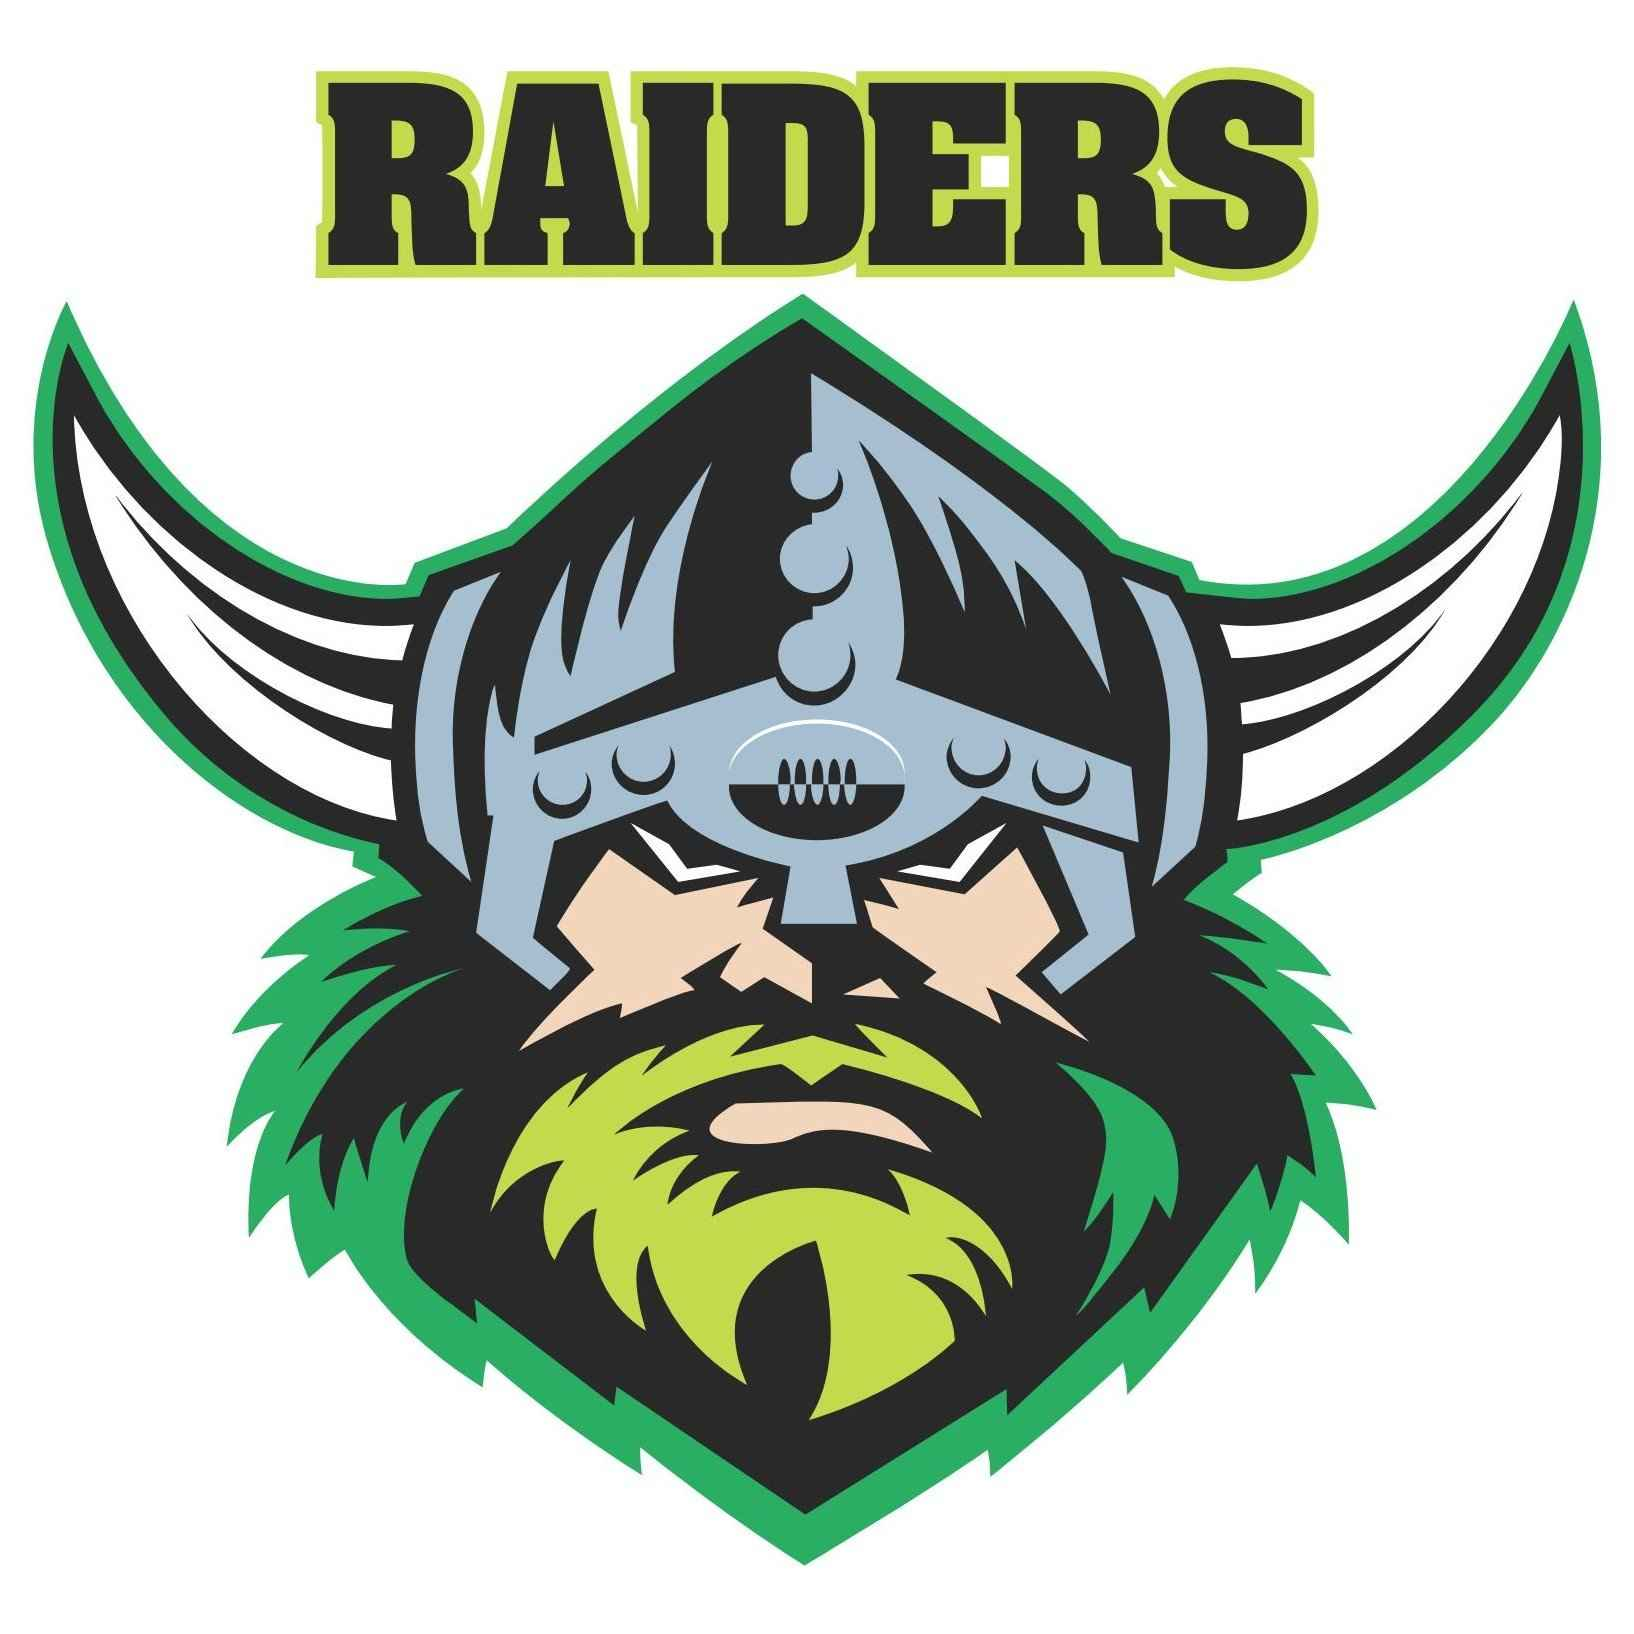 Canberra Raiders Logo Vector EPS Free Download, Logo, Icons, Brand Emblems